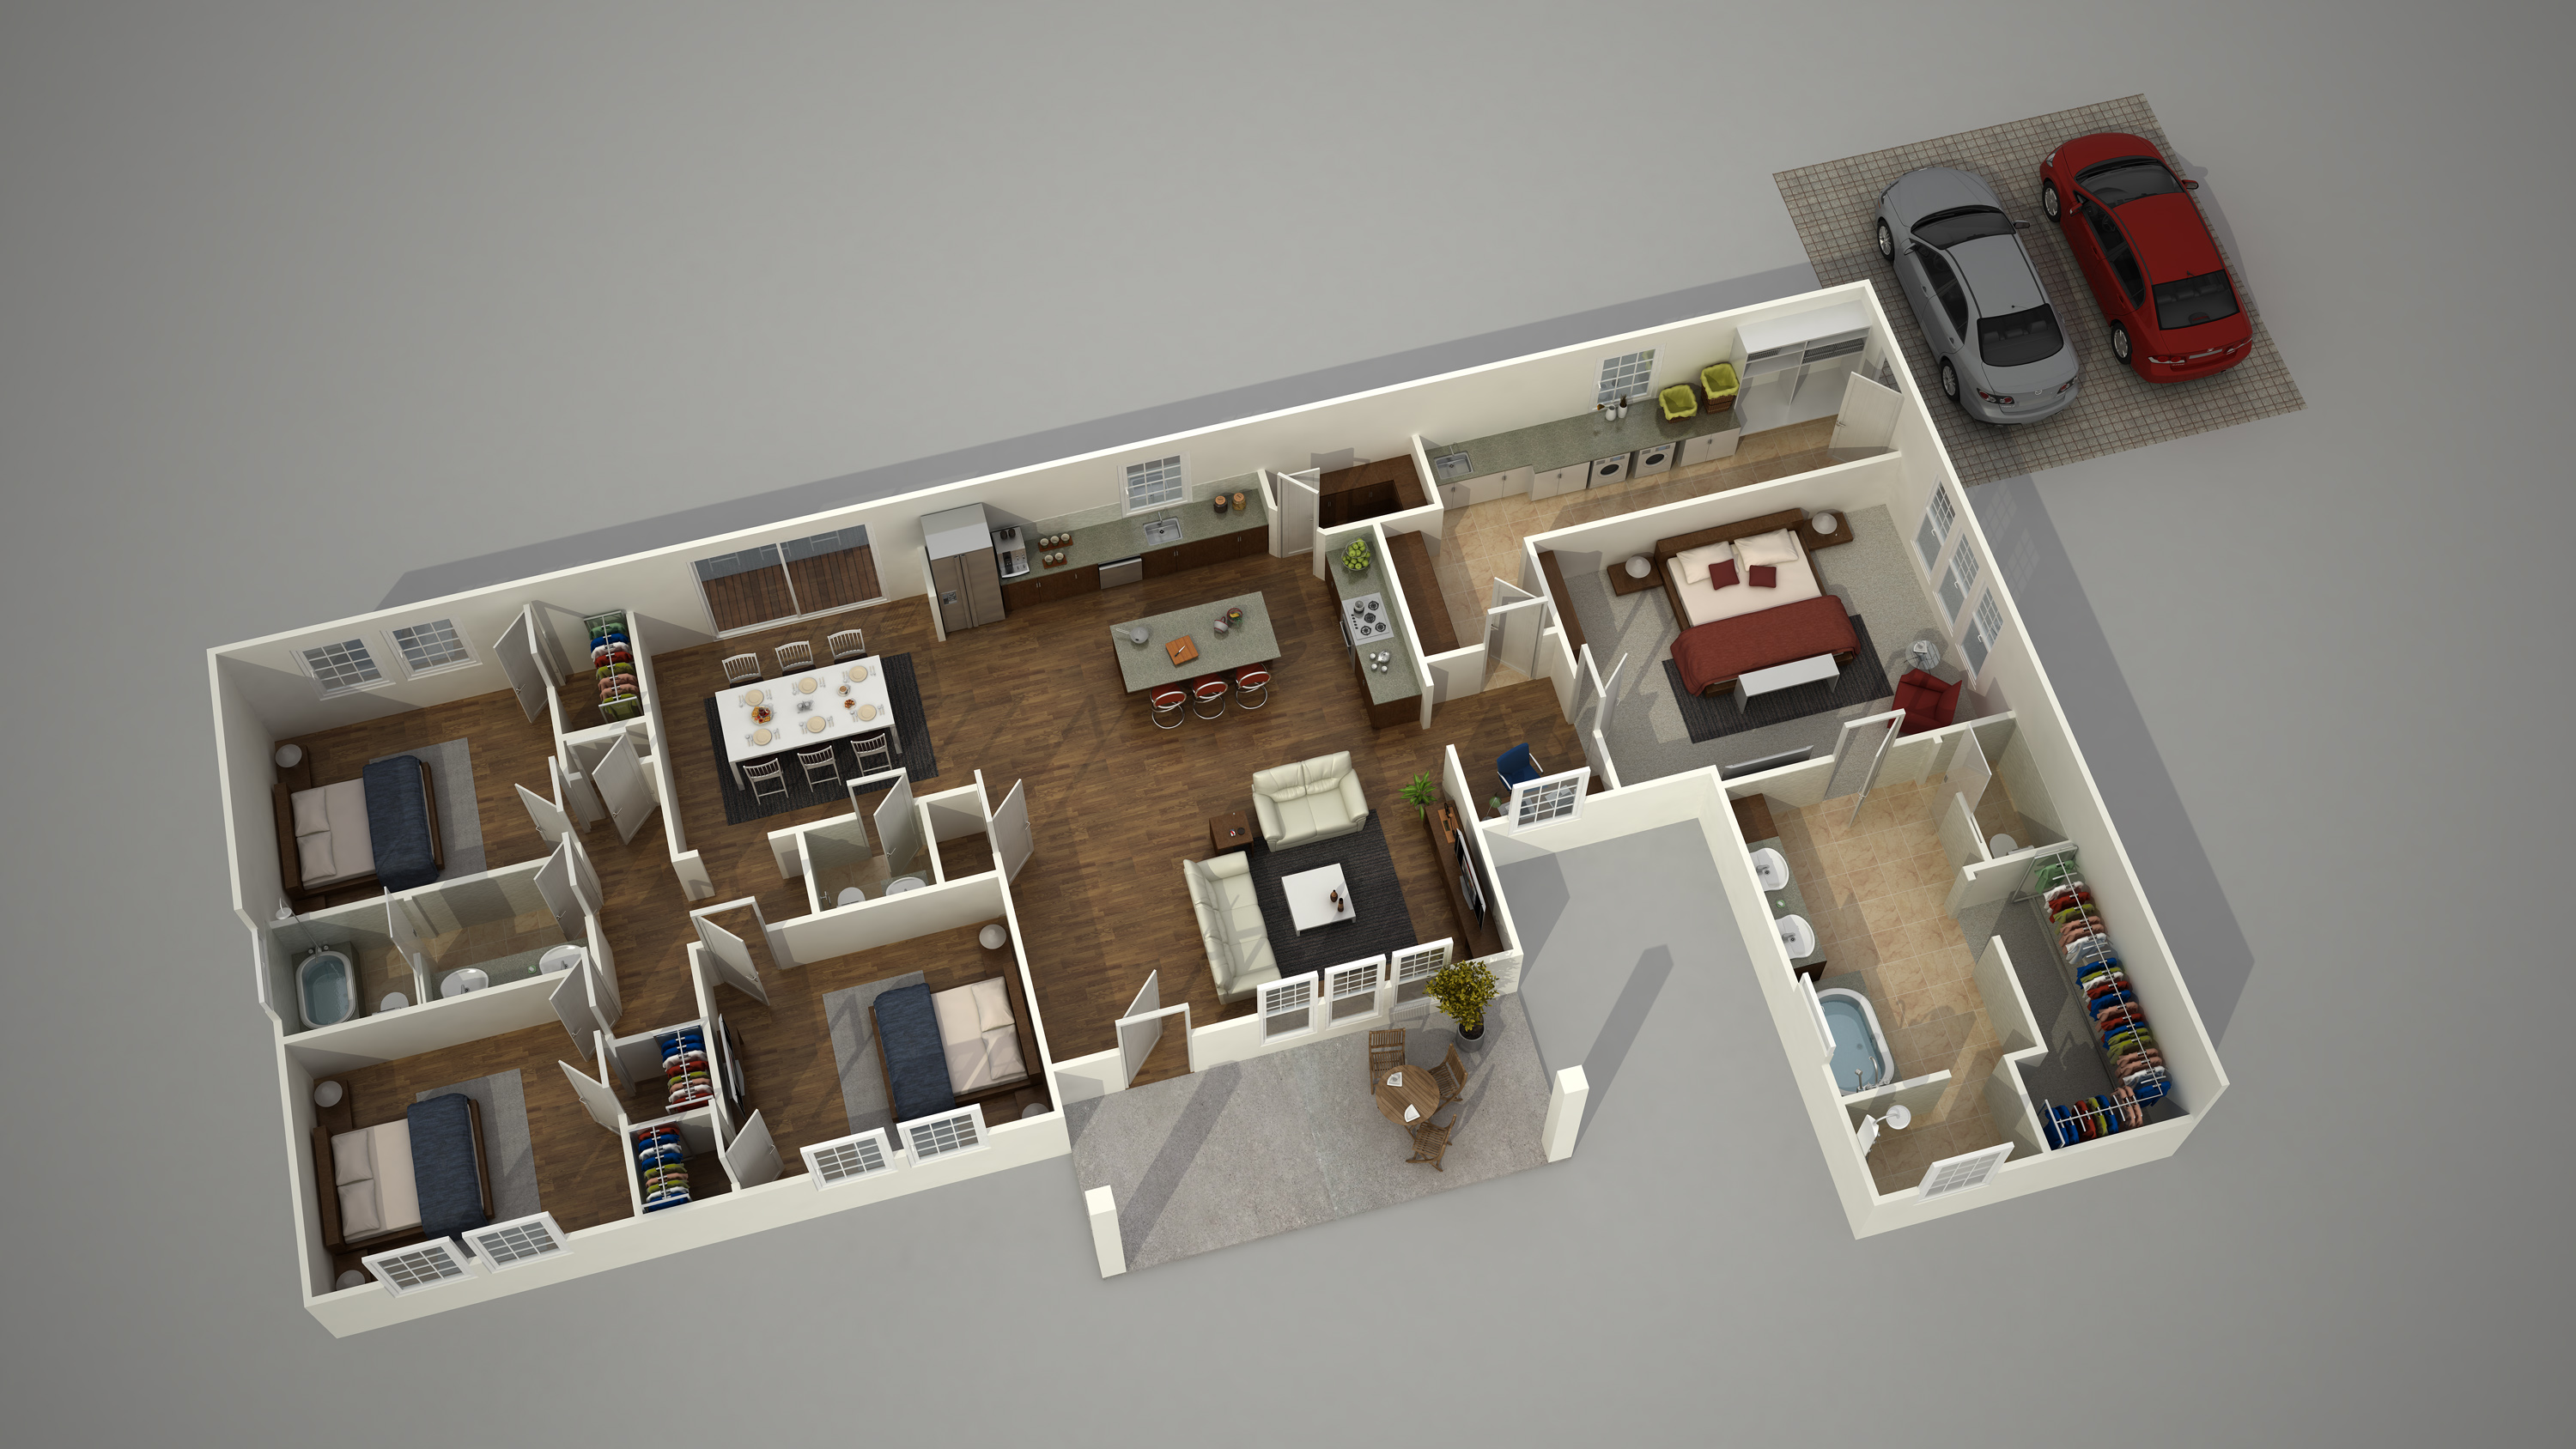 Plan Architecte 3d How To Create A 3d Architecture Floor Plan Rendering